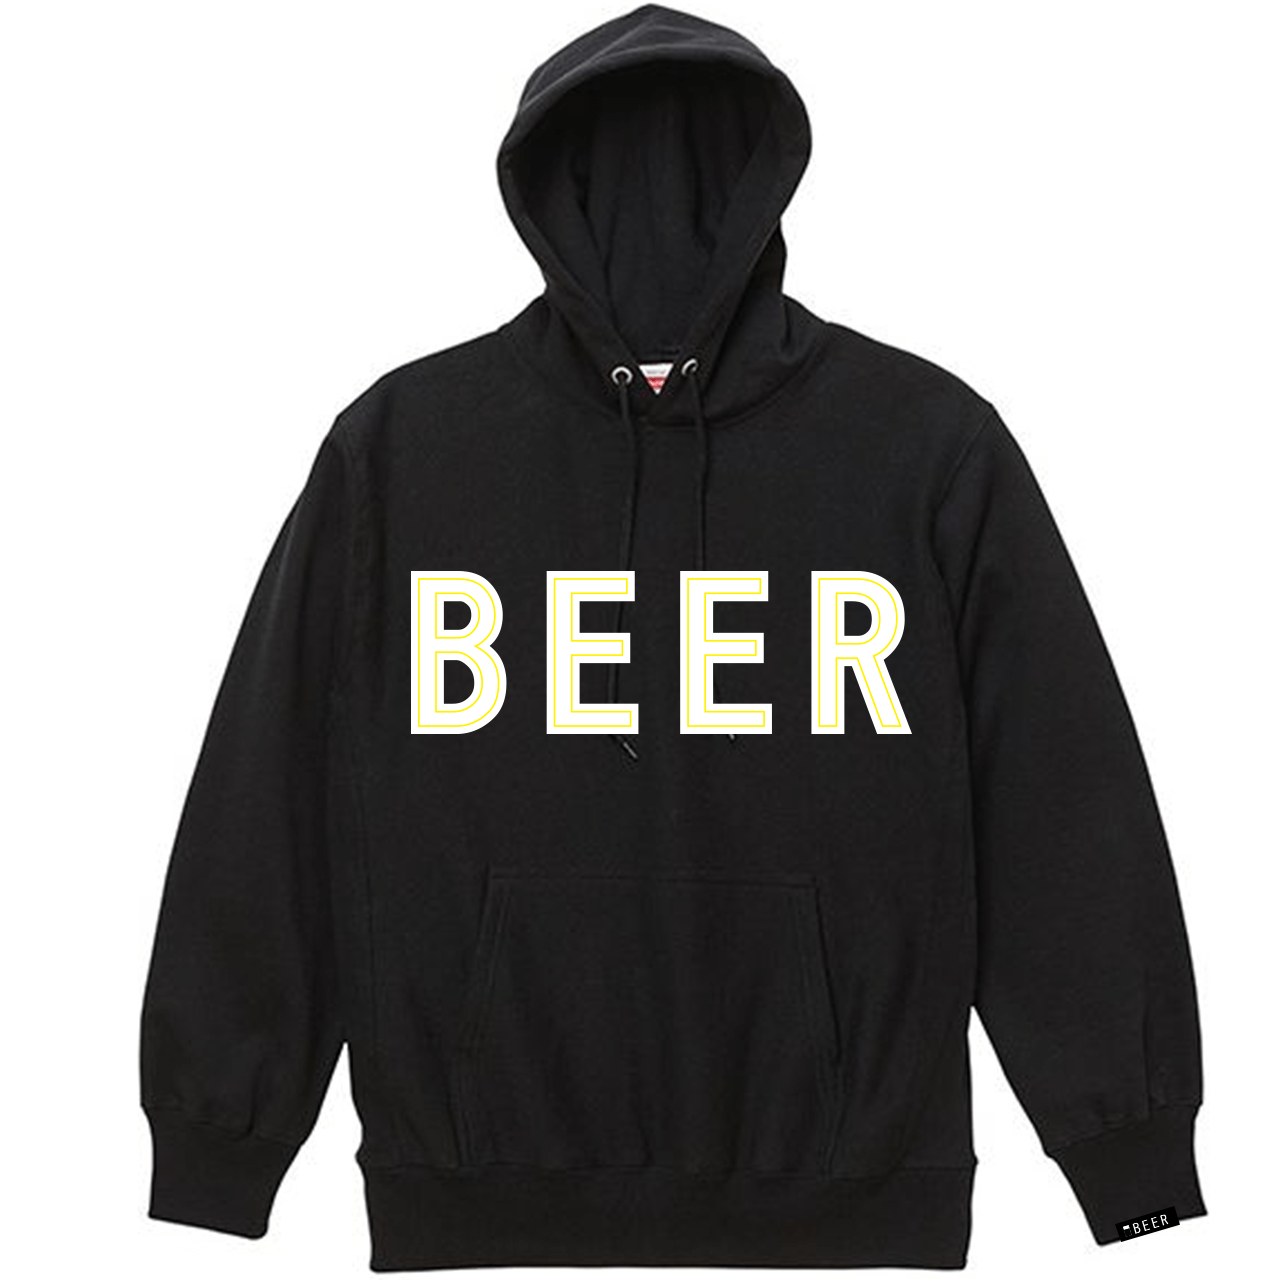 BEER アップリケロゴパーカ